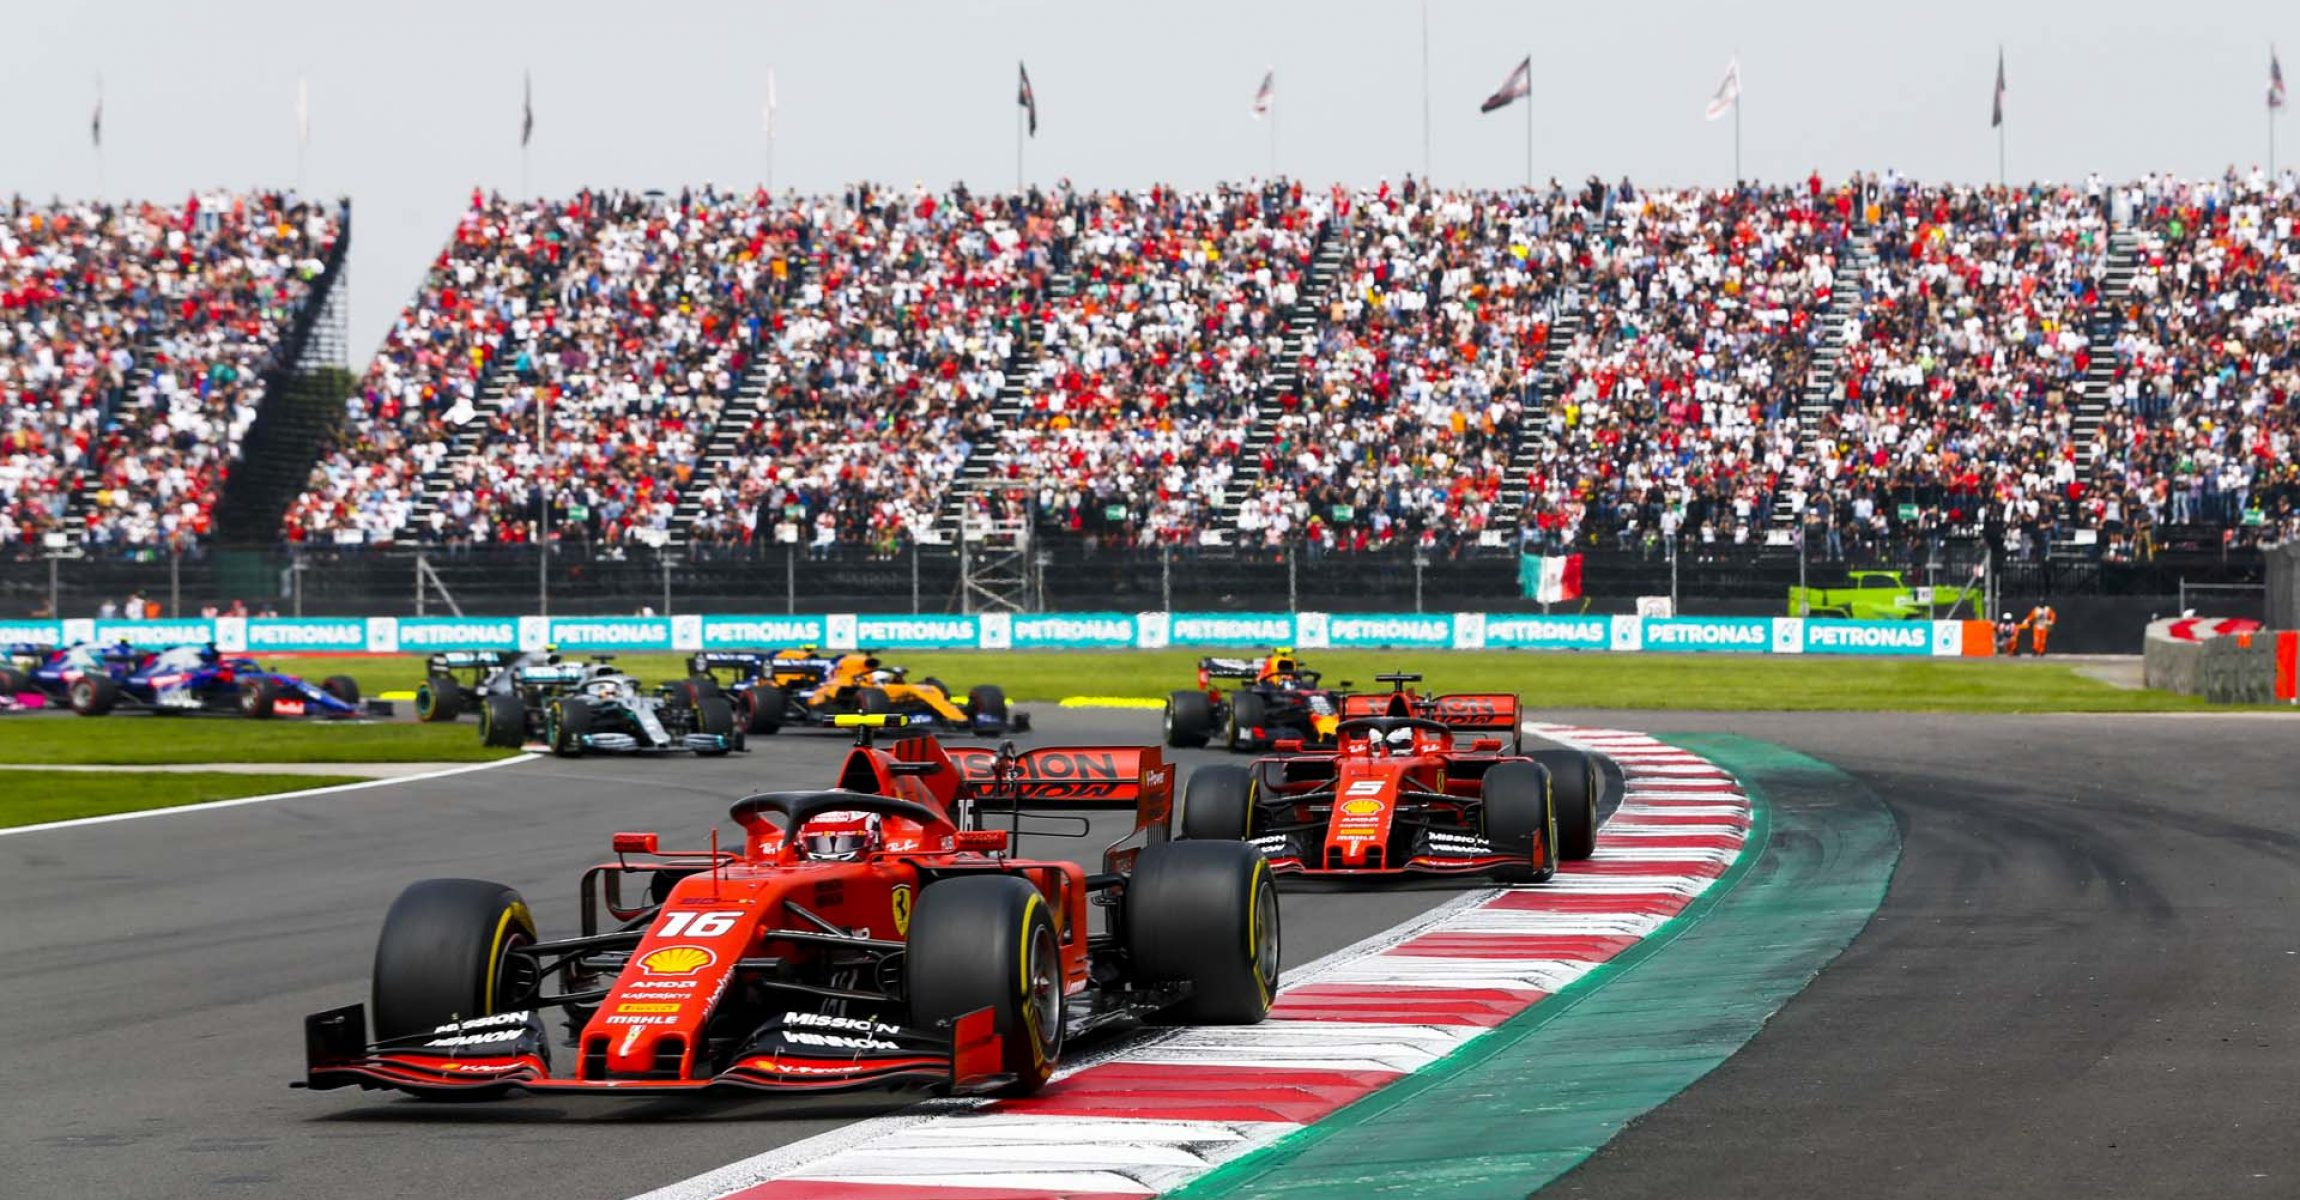 MEXICO CITY - OCTOBER 27: Charles Leclerc, Ferrari SF90 leading Sebastian Vettel, Ferrari SF90 at the start of the race during the 2019 Formula One Mexican Grand Prix at Autodromo Hermanos Rodriguez, on October 27, 2019 in Mexico City, Mexico. (Photo by Joe Portlock / LAT Images)